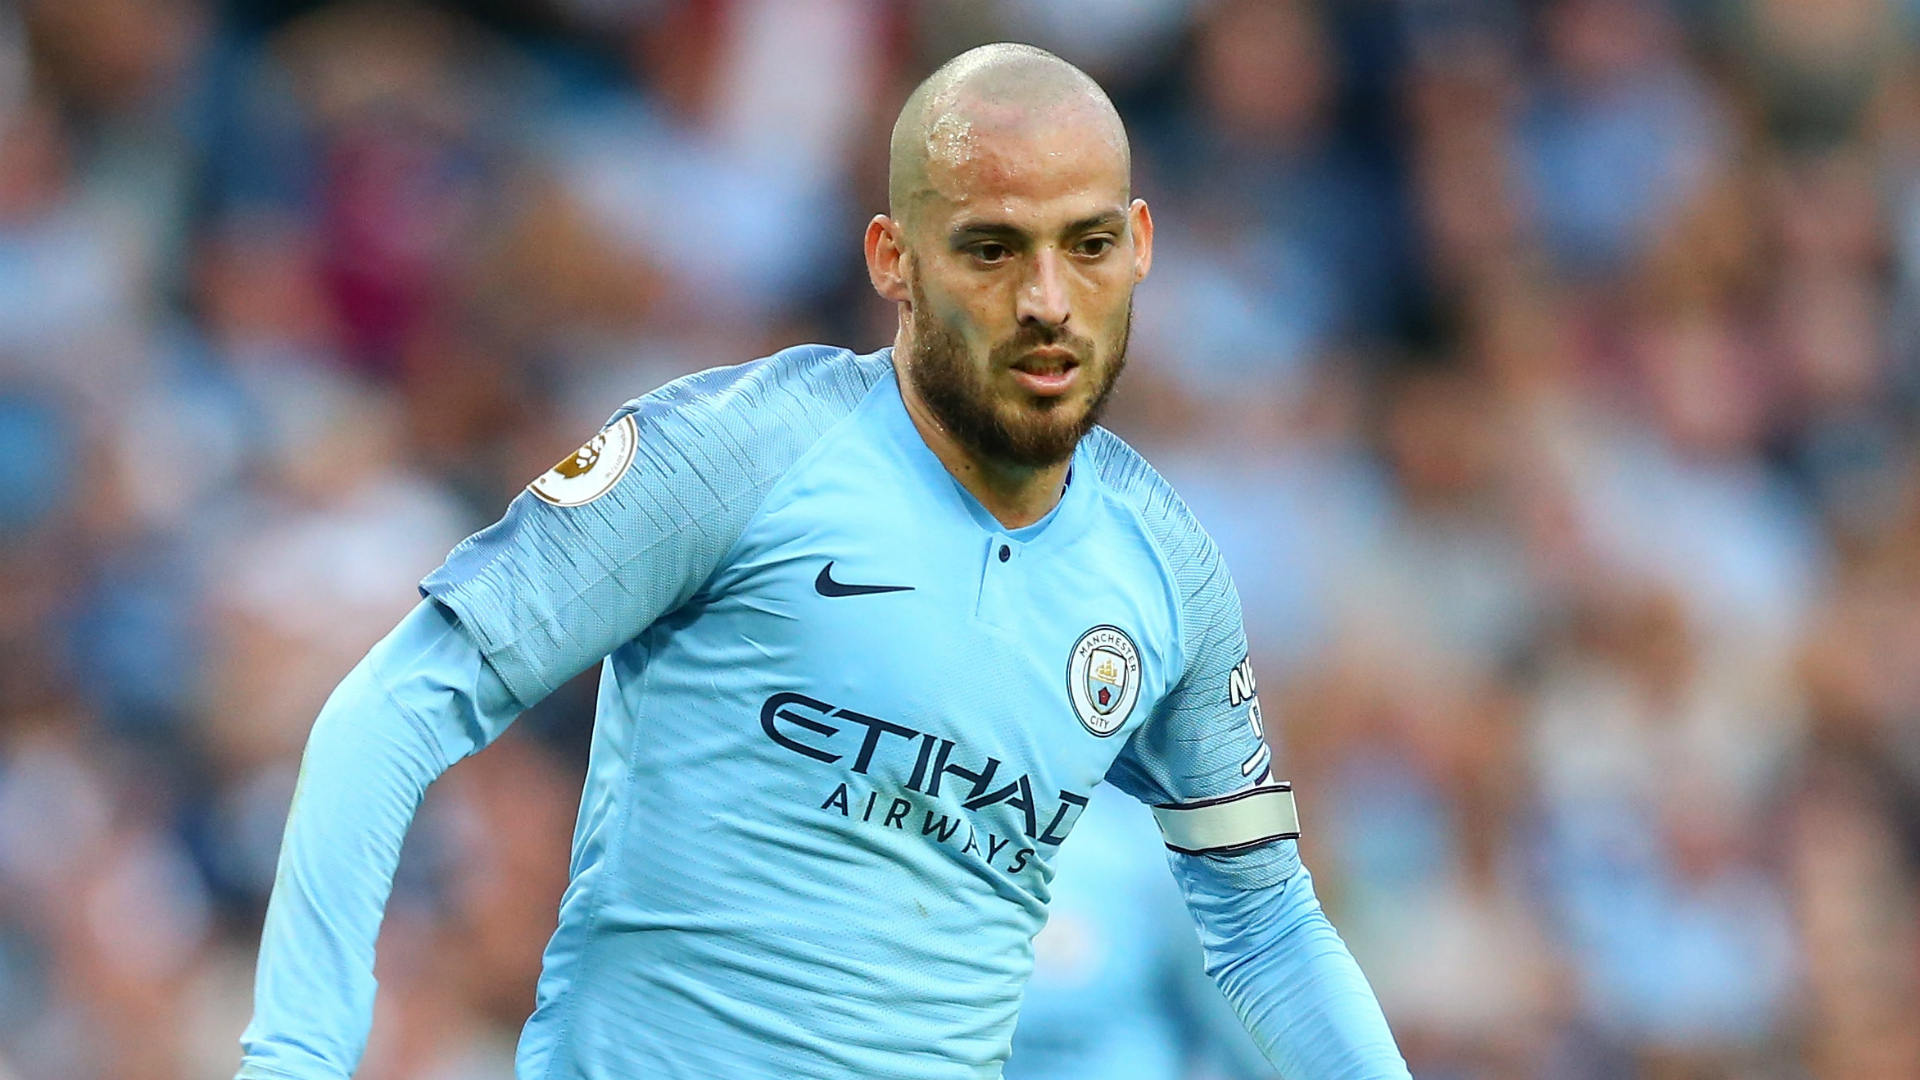 David Silva reveals he expects to leave Manchester City in 2020